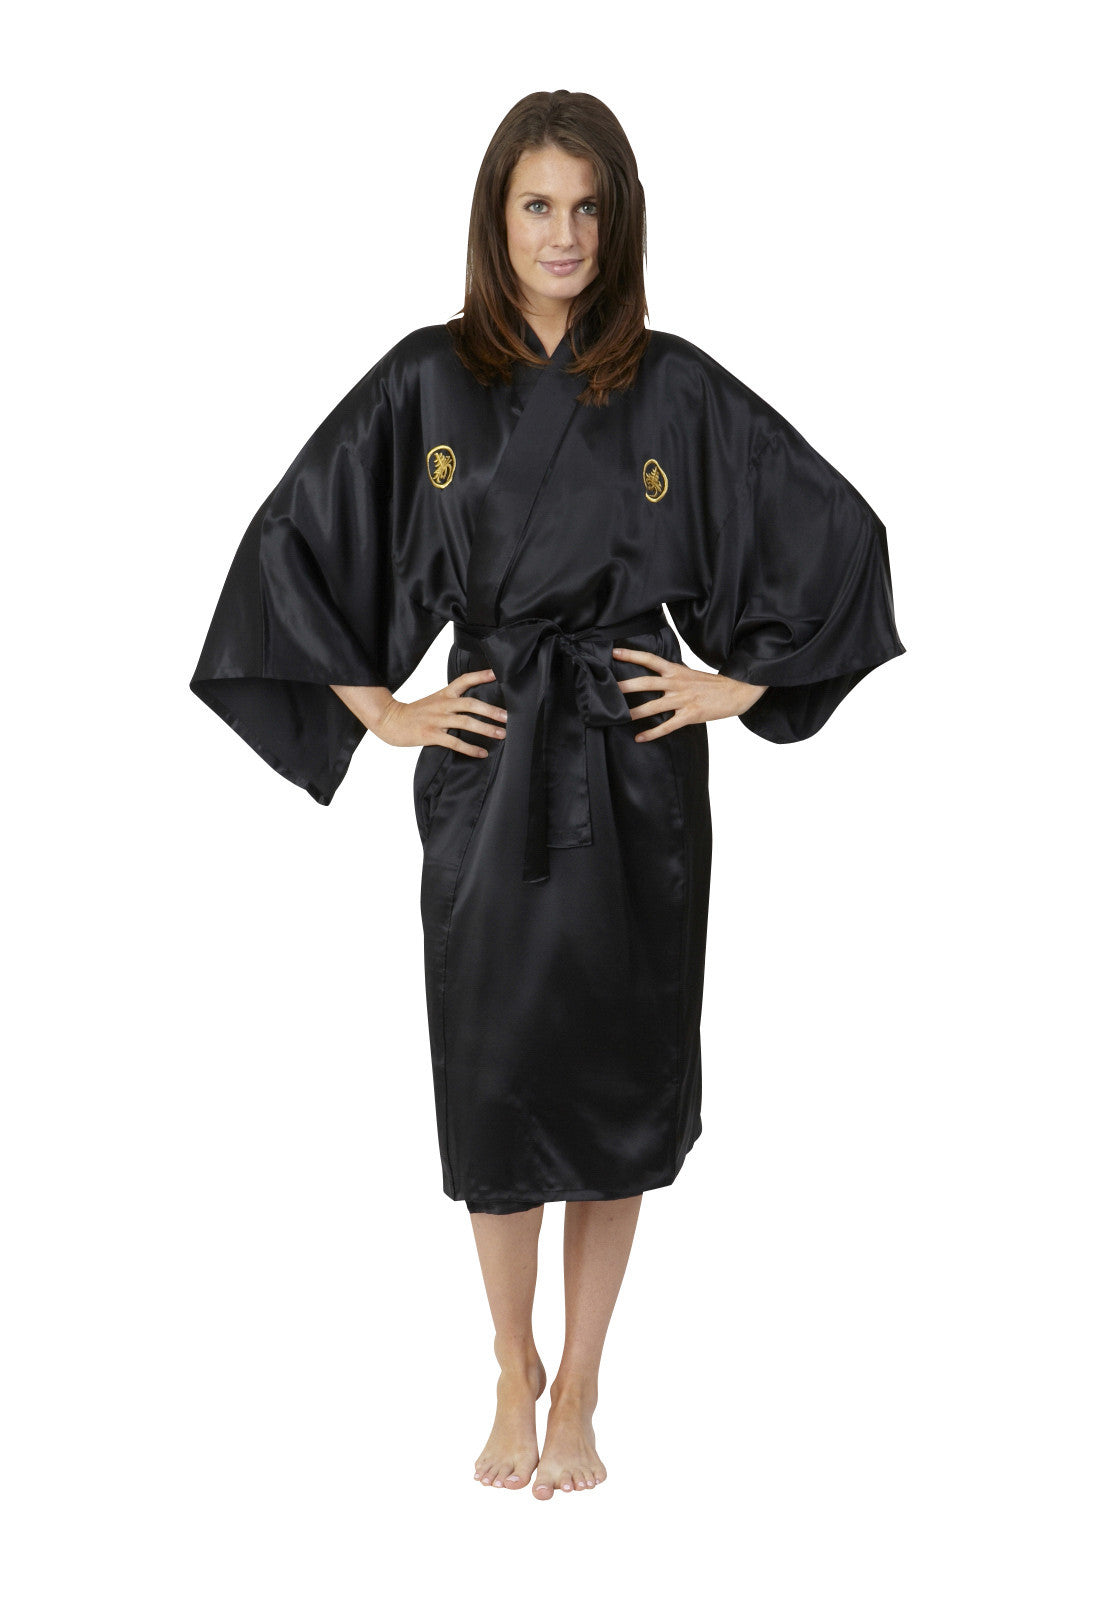 ... Womens Short Silk Kimono Black Gold Embroidery Dressing Gown Robe ... 2893e1d3c